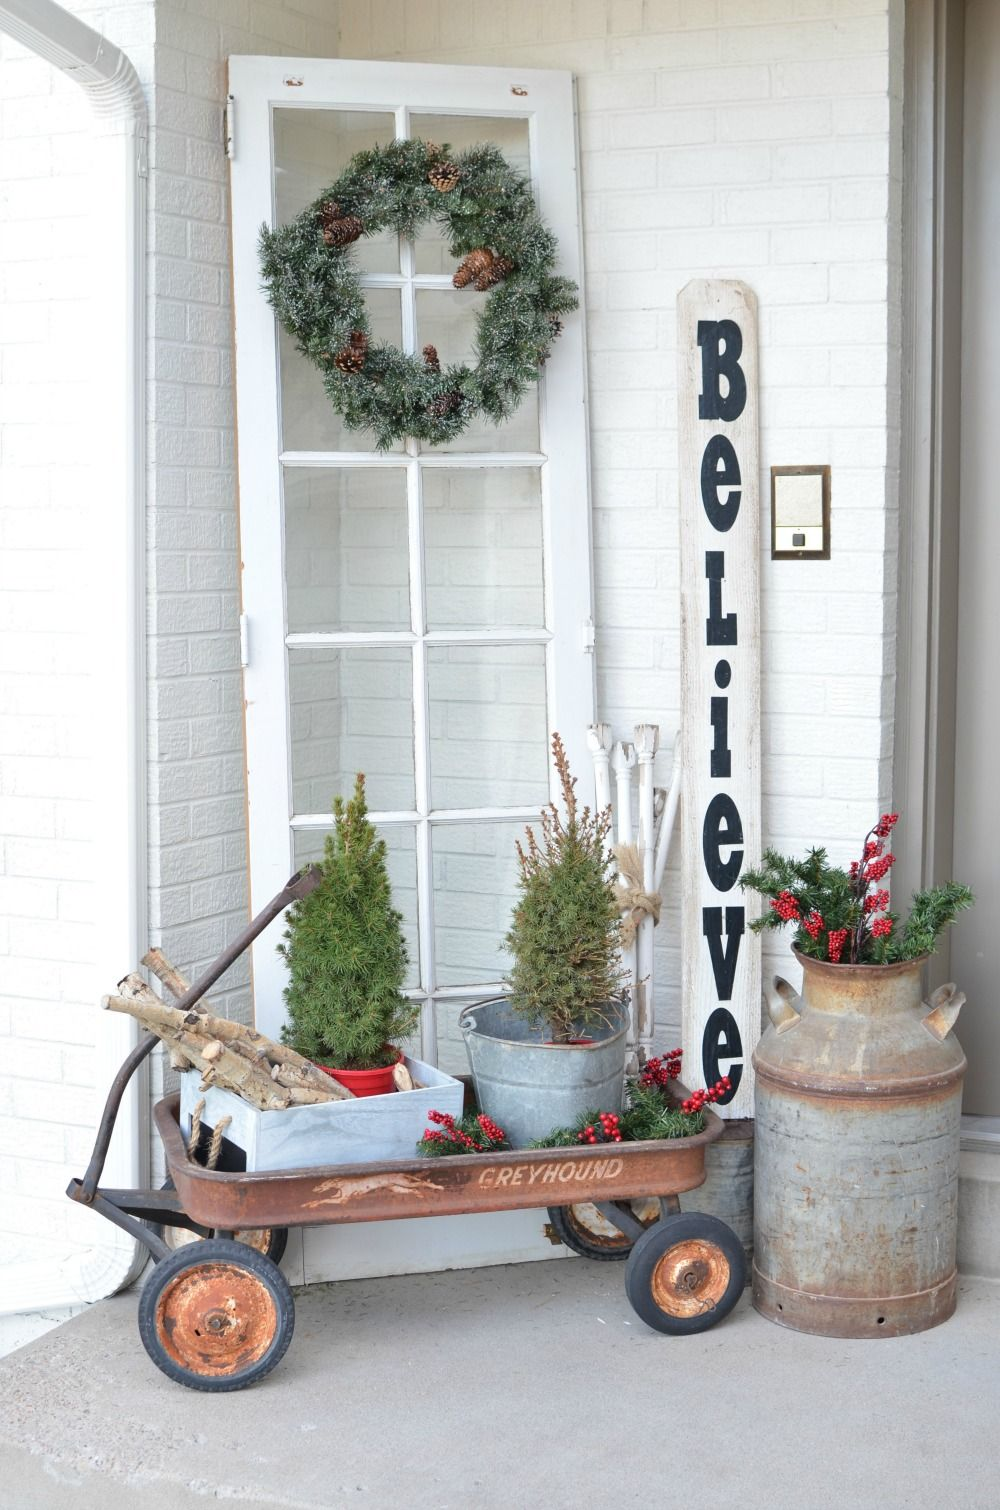 50 Best Outdoor Christmas Decorations - Christmas Yard Decorating Ideas